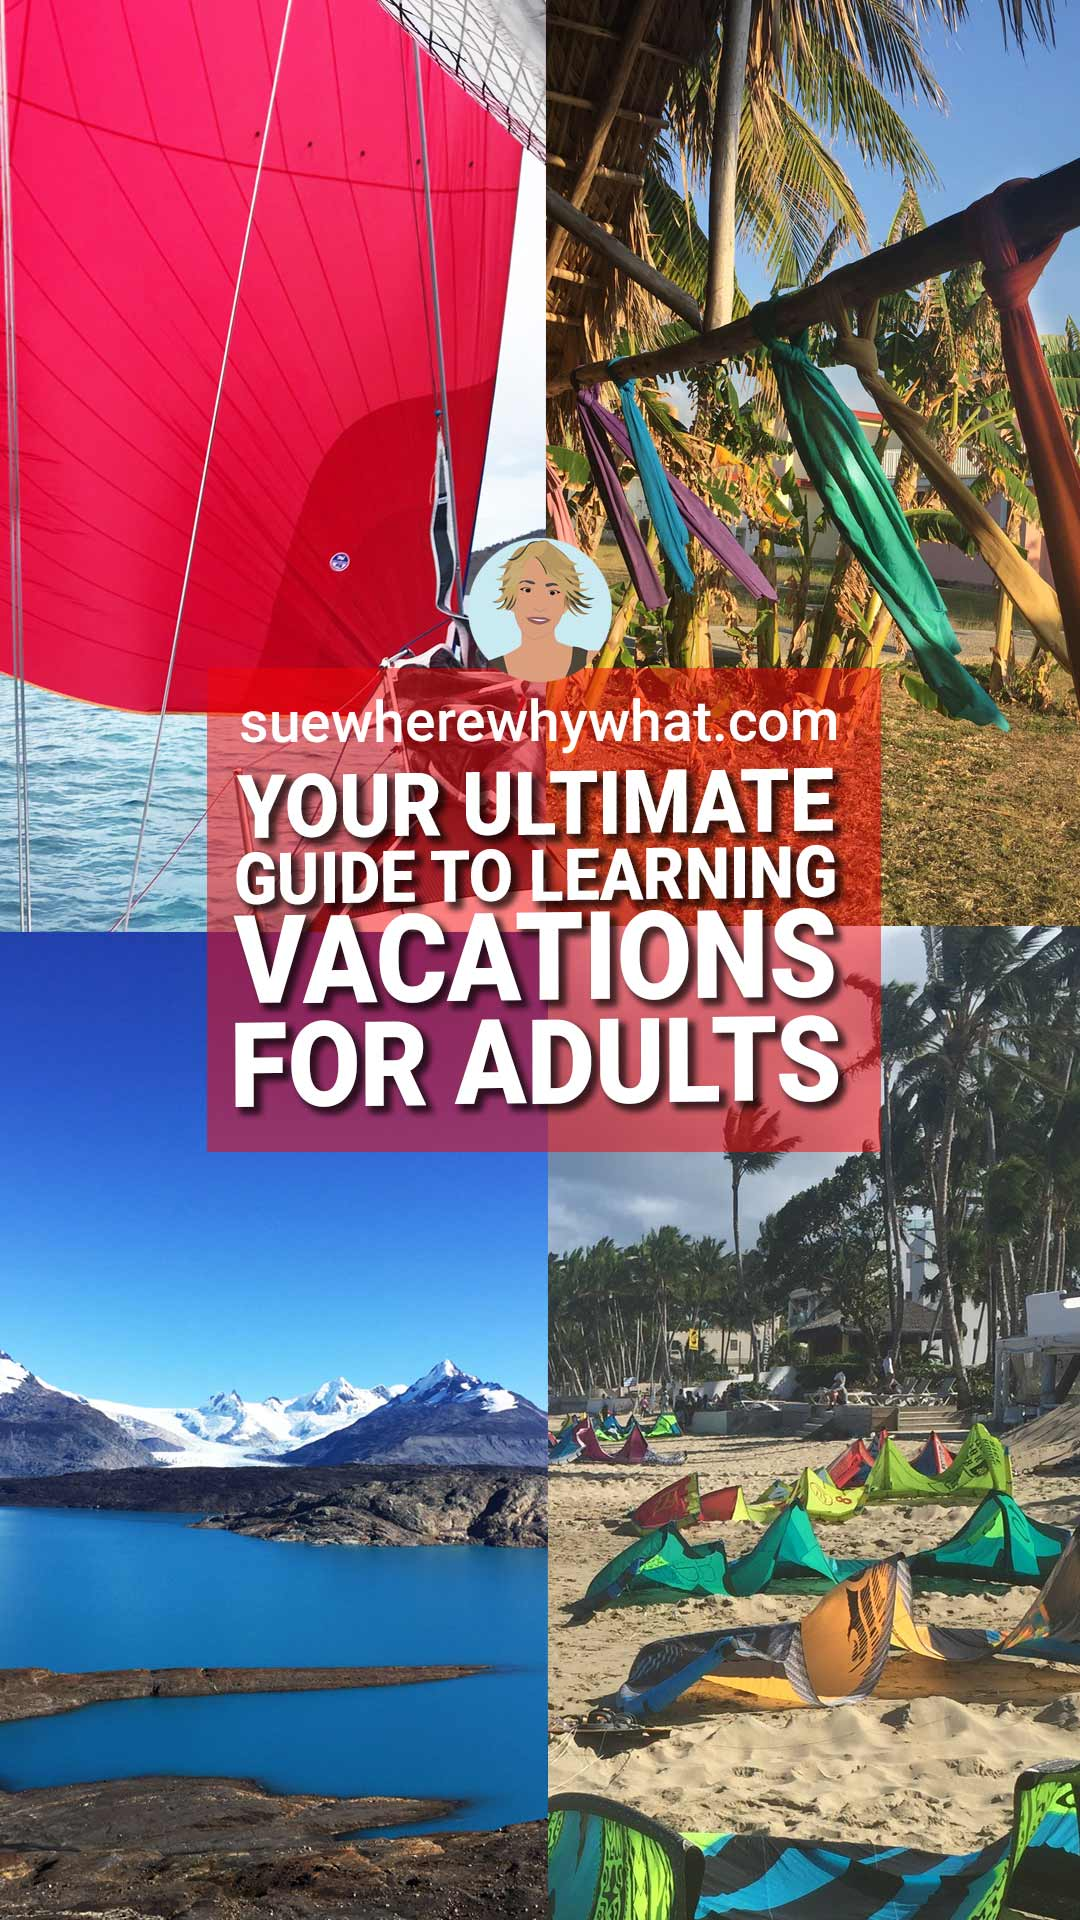 Your Ultimate Guide to Learning Vacations for Adults – Over 30 Inspirational Ideas